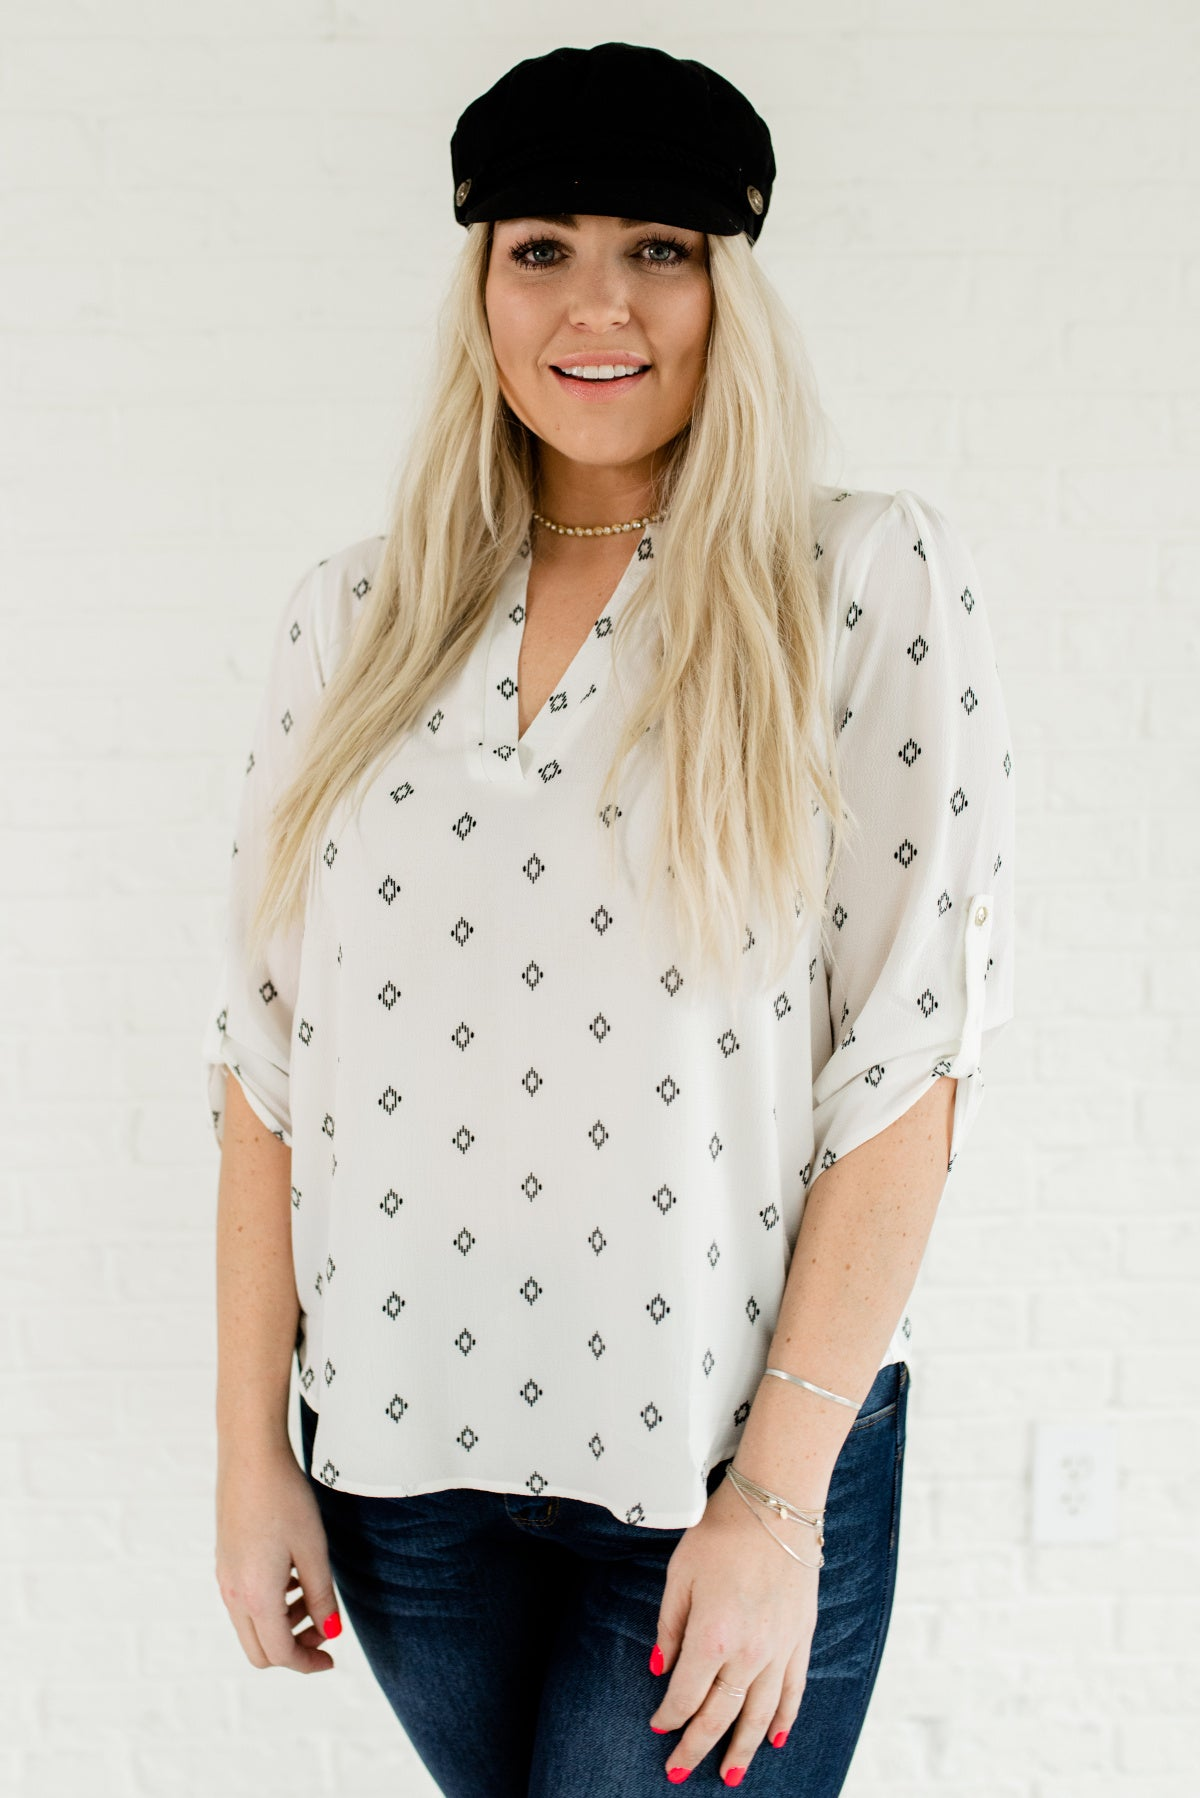 White and Black Geometric Patterned Plus Size Boutique Blouse for Women